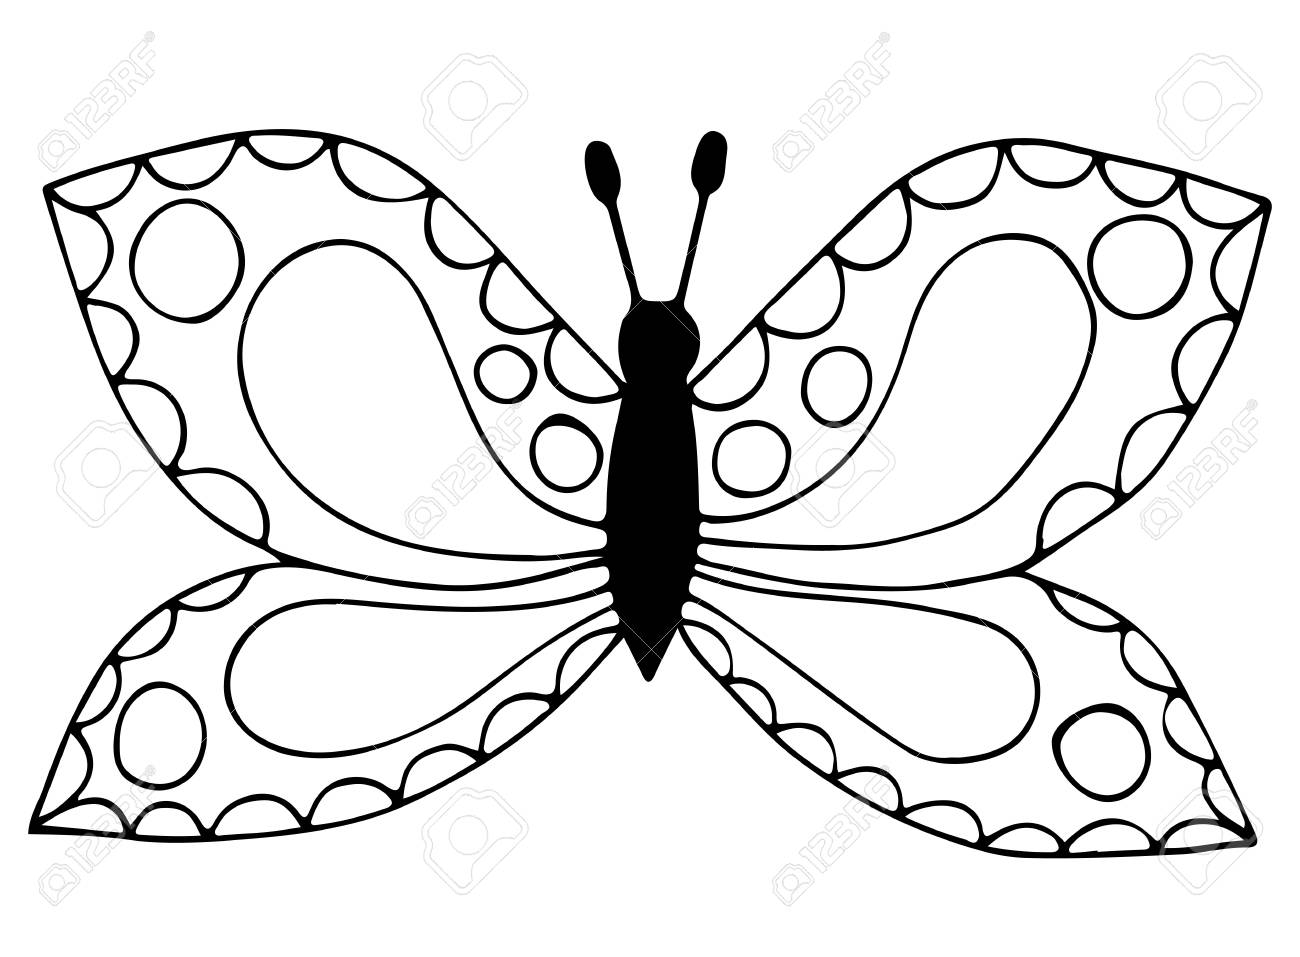 Abstract Black Line Butterfly For Coloring Book, Tattoo, For ...